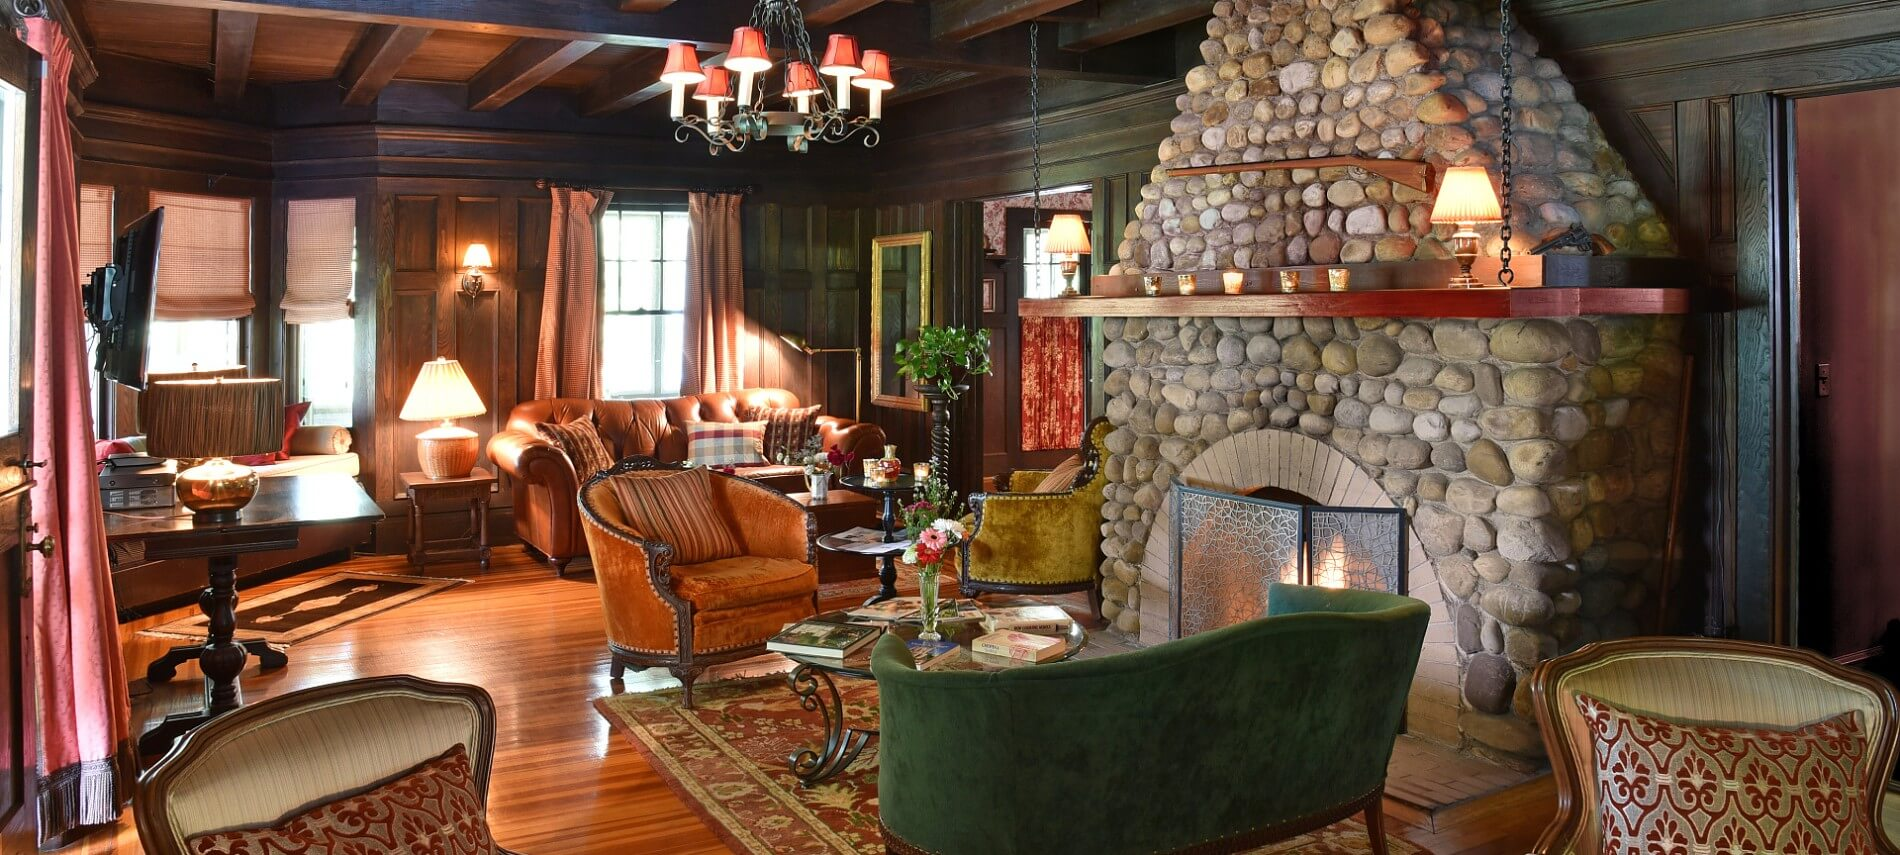 Cozy sitting room with tall rock fireplace, brown leather couch, two sitting chairs, square table and dark wood paneling on walls